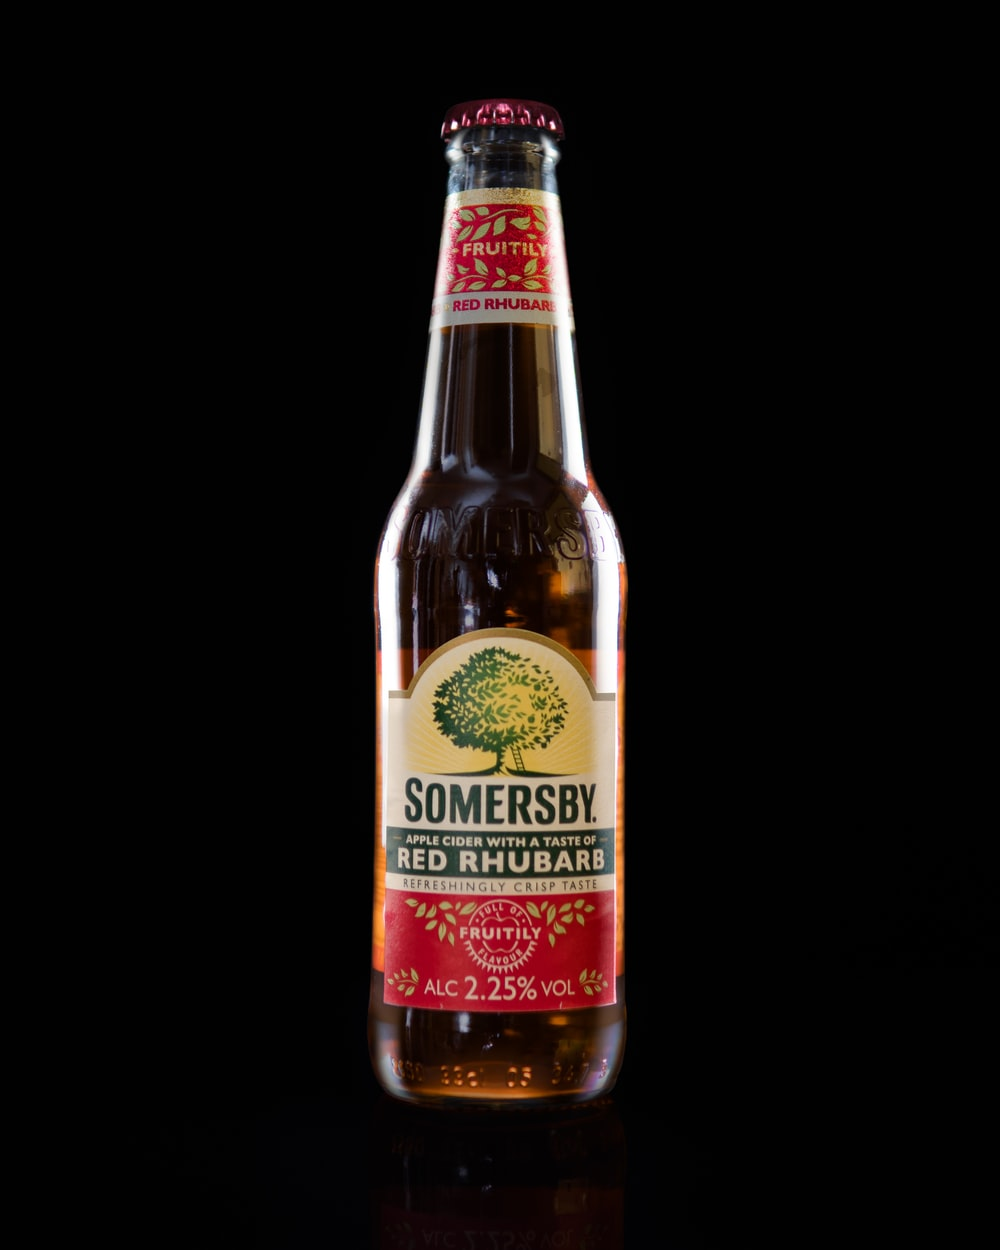 Somersby glass bottle